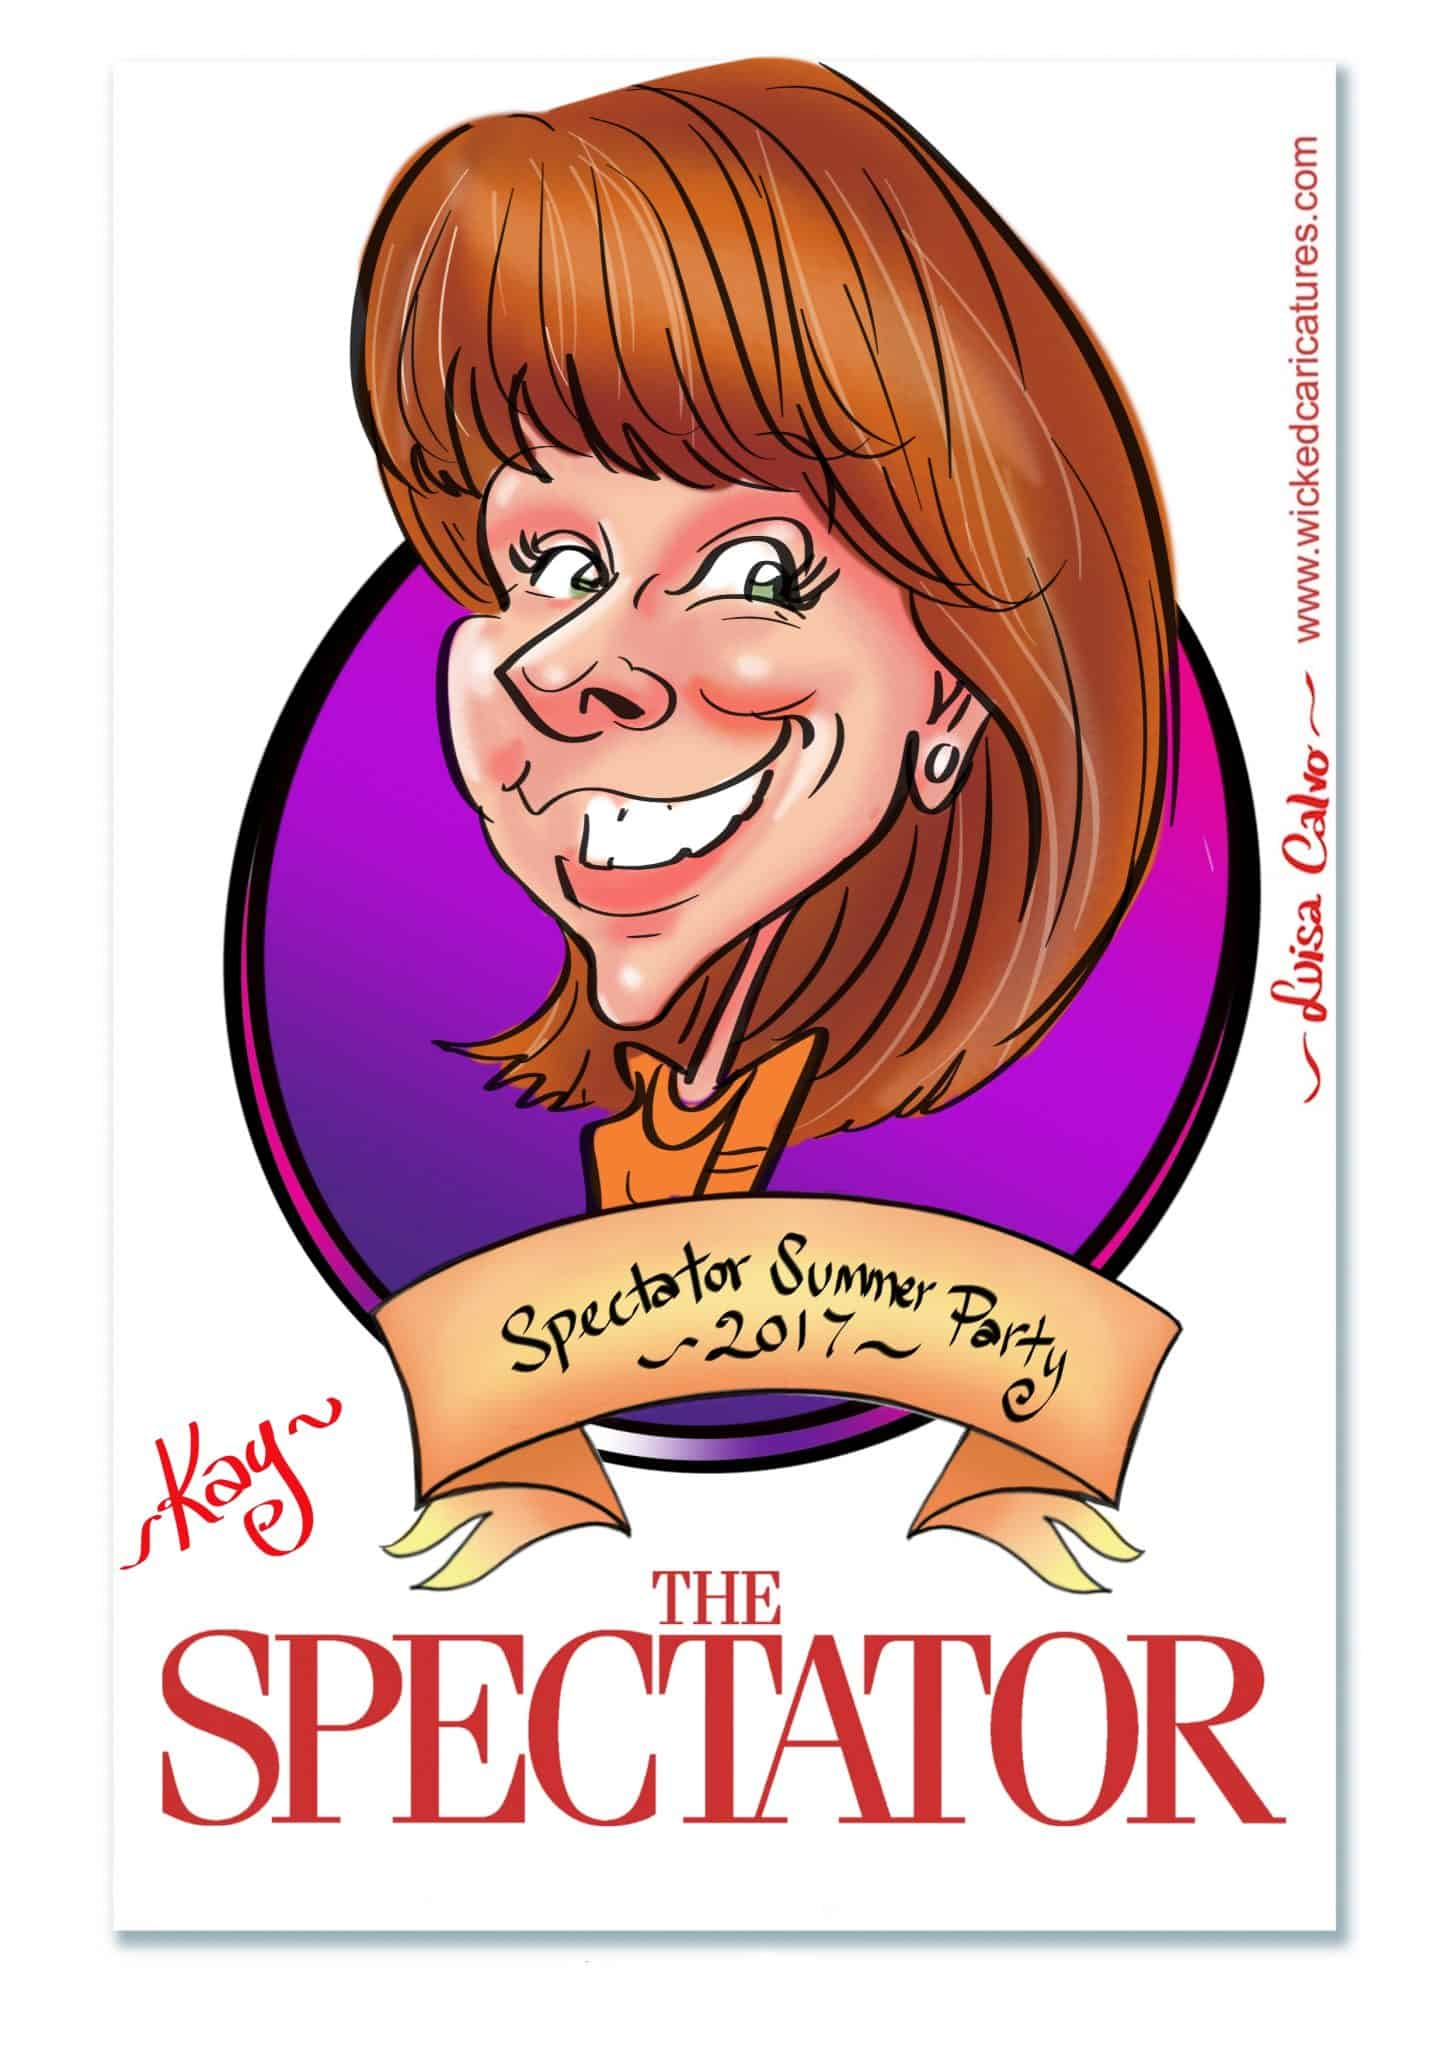 Kay Burley live digital caricature at Spectator Summer Party 2017 by Luisa Calvo